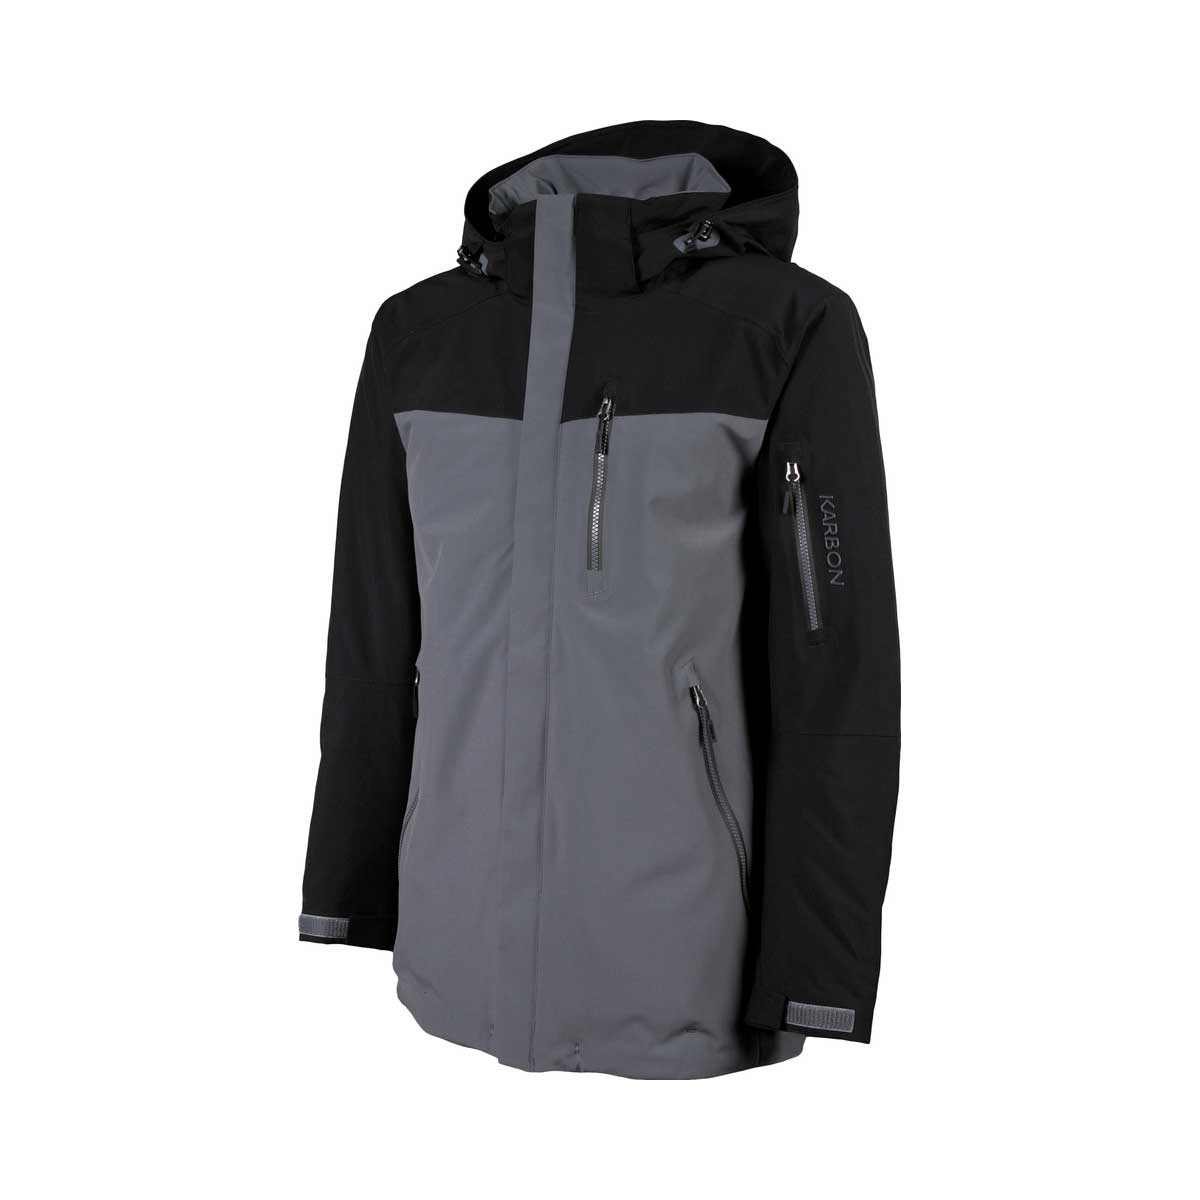 Karbon Men's Radar Jacket in Iron